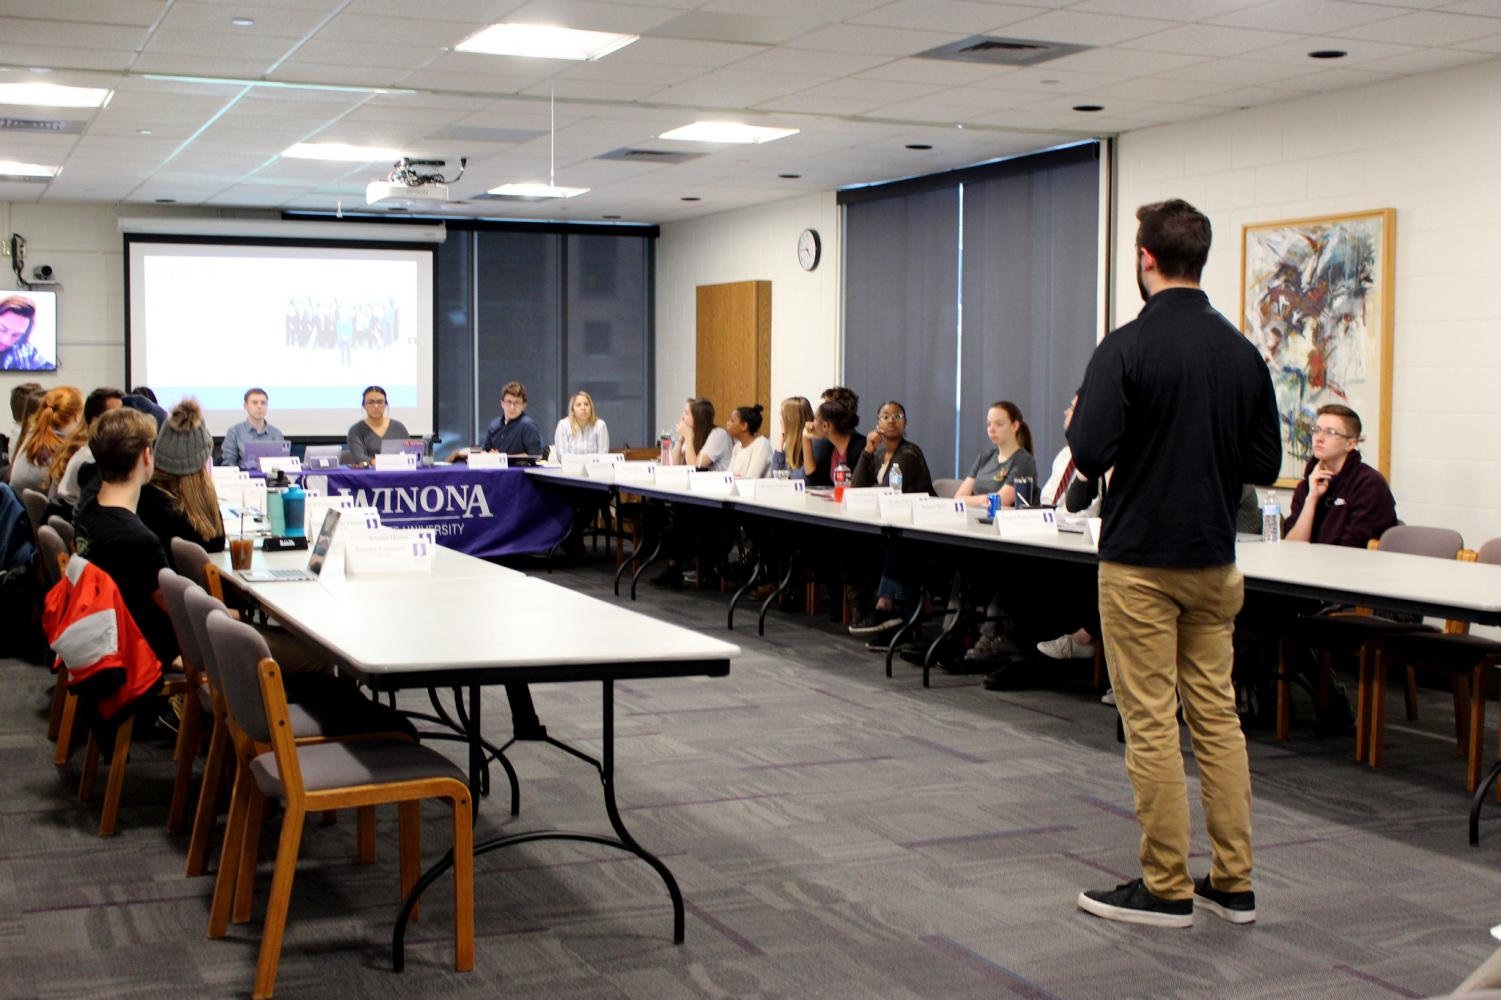 Geoffrey Curry of Pi Sigma Epsilon stands before Student Senate to ask for funds, the fraternity will be attending a business convention in Florida later this year.